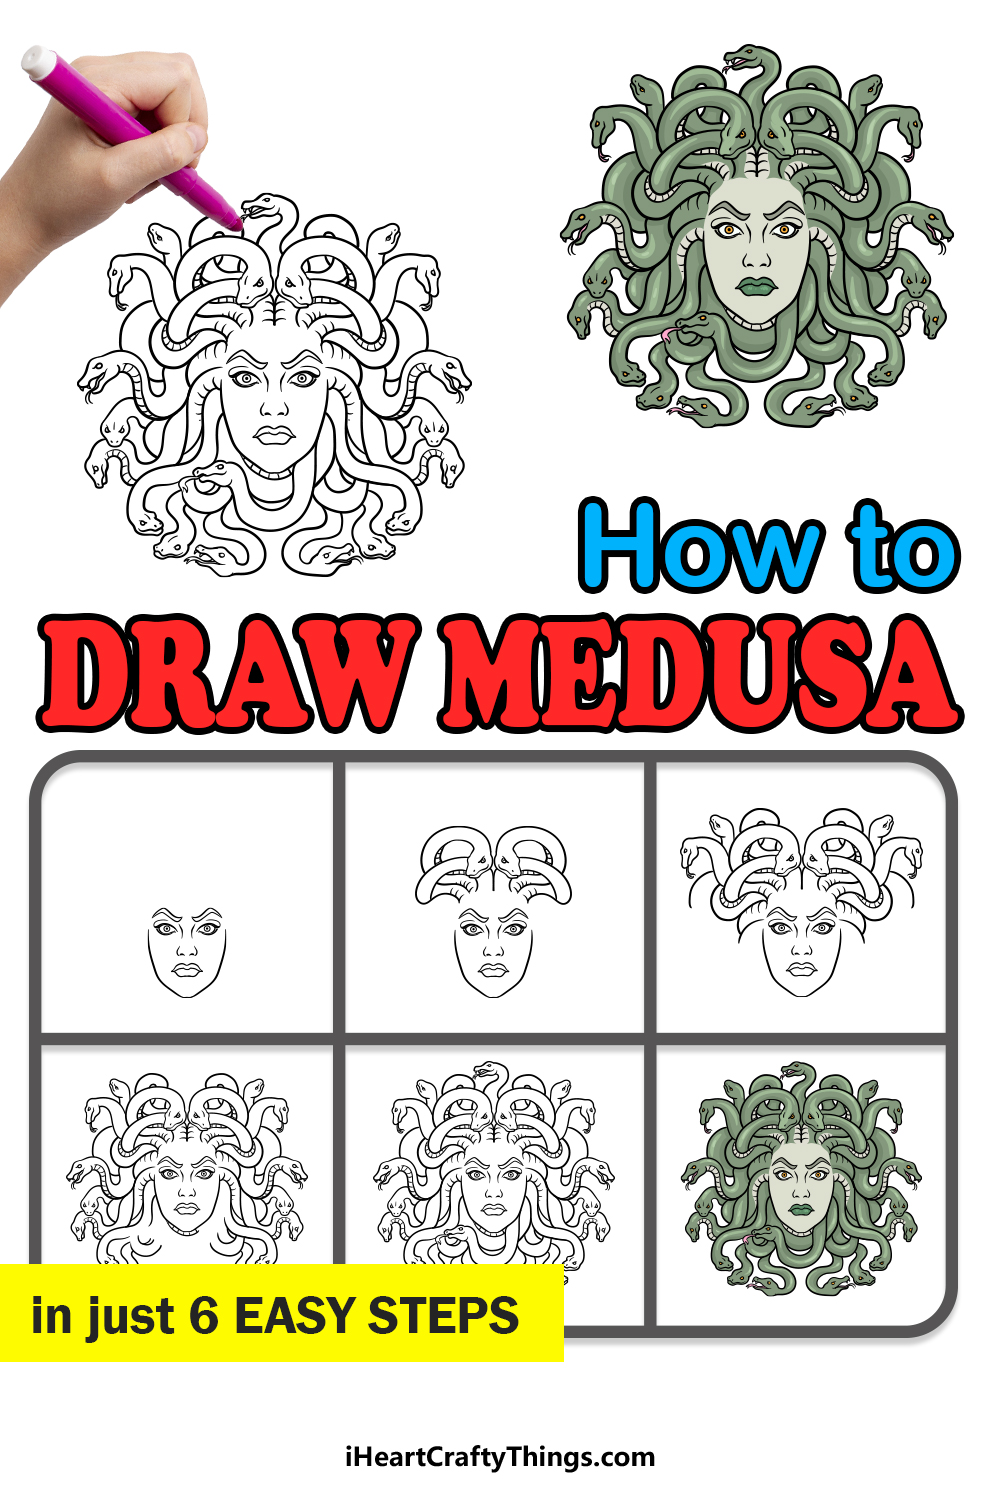 how to draw Medusa in 6 easy steps